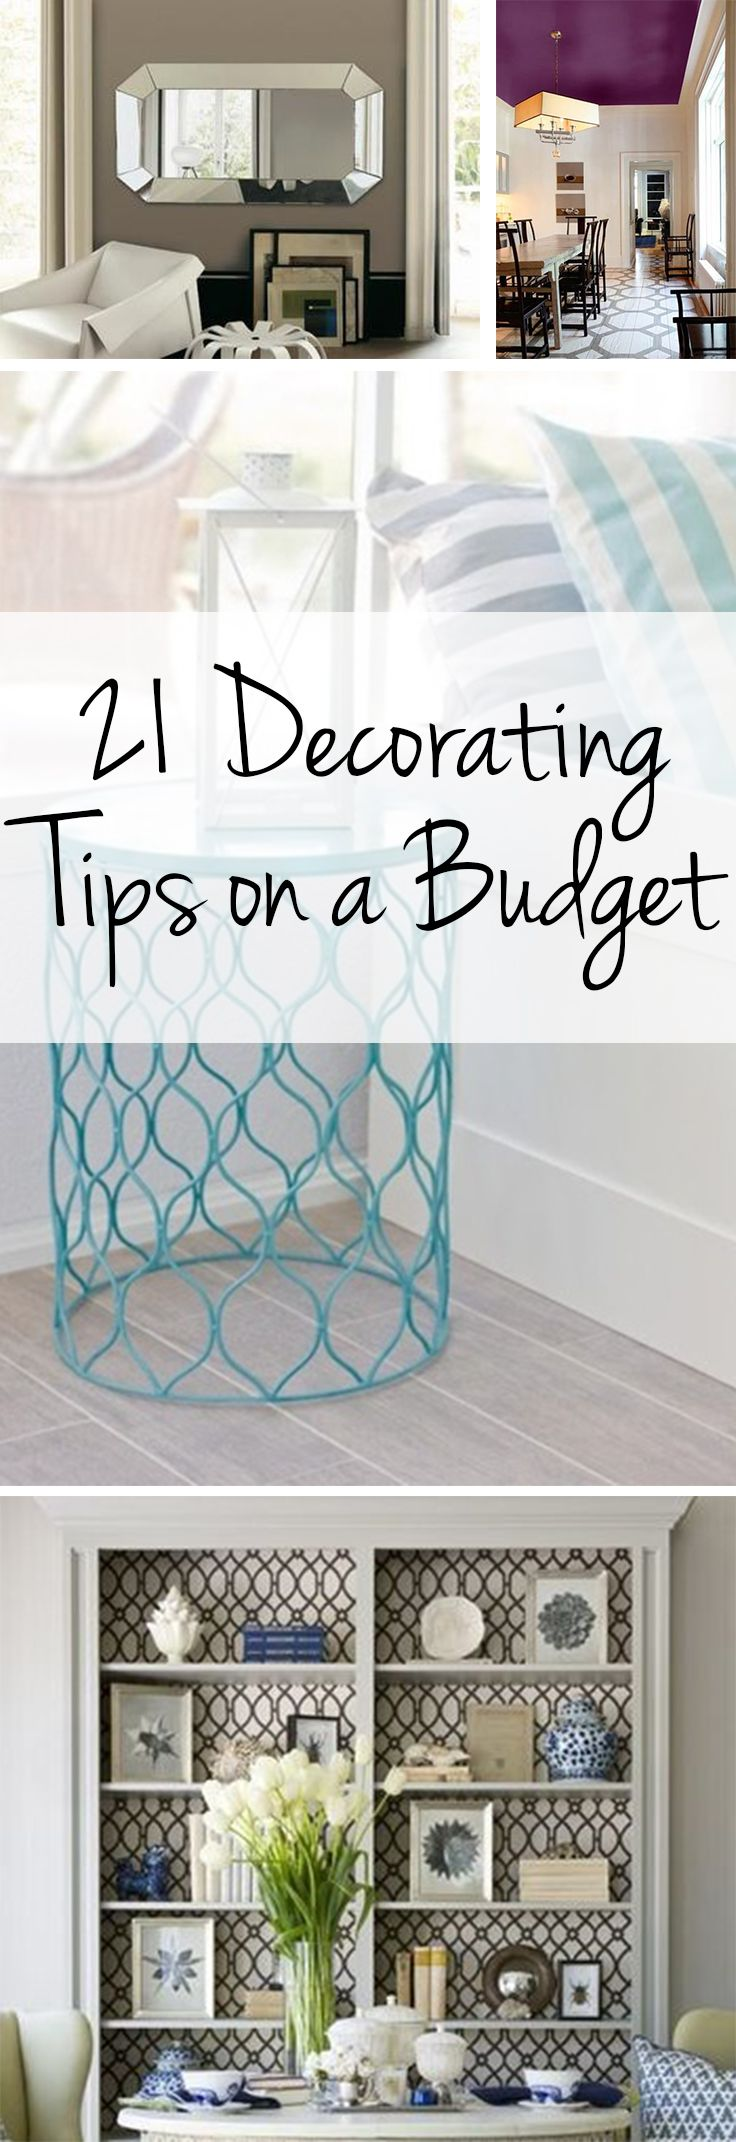 17 best ideas about home interior design on pinterest - Interior design ideas on a budget ...